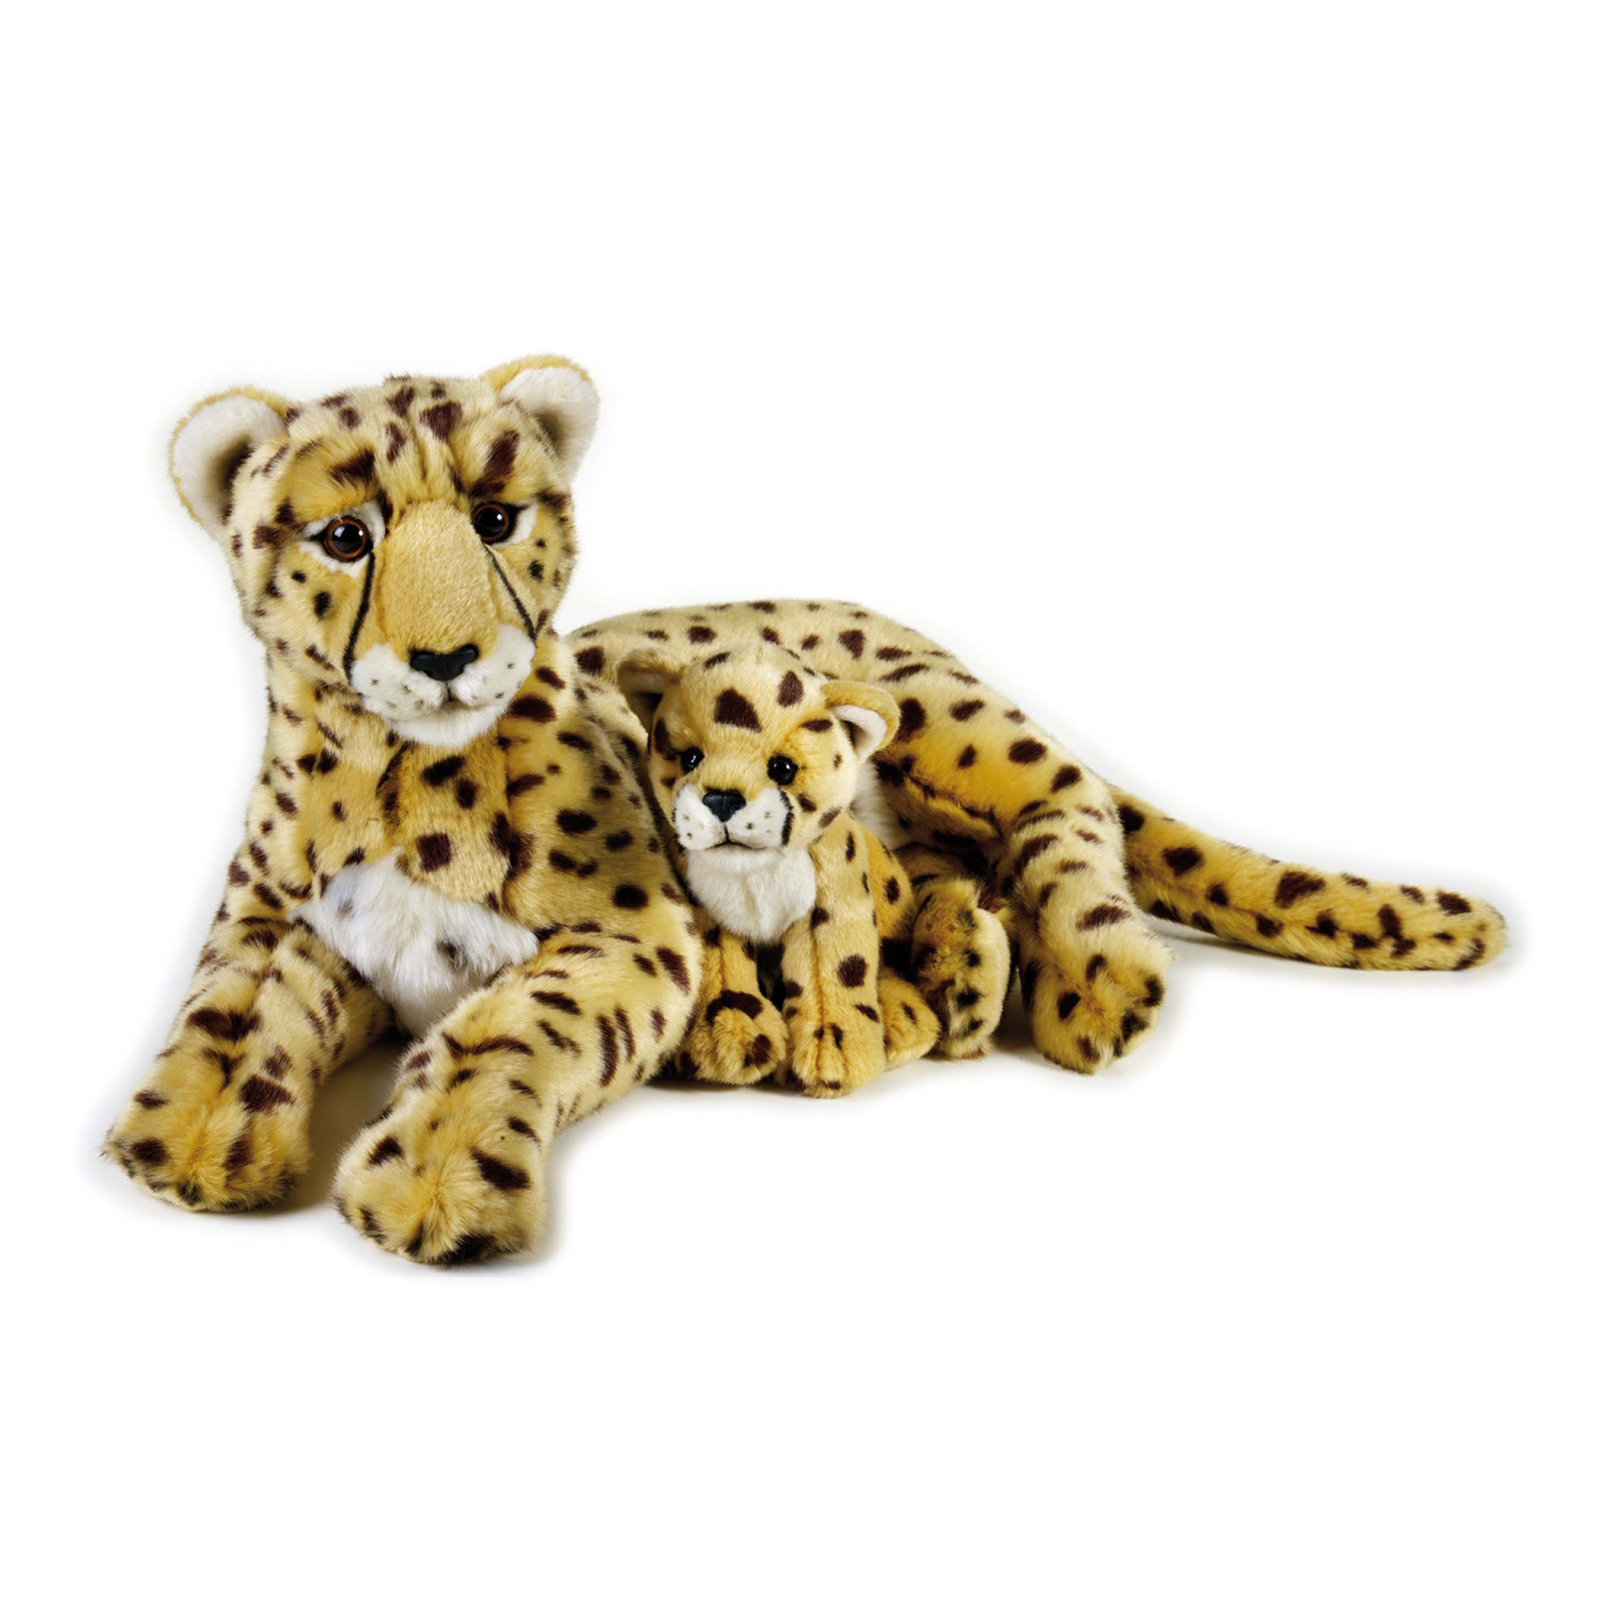 National Geographic Cheetah With Baby Plush